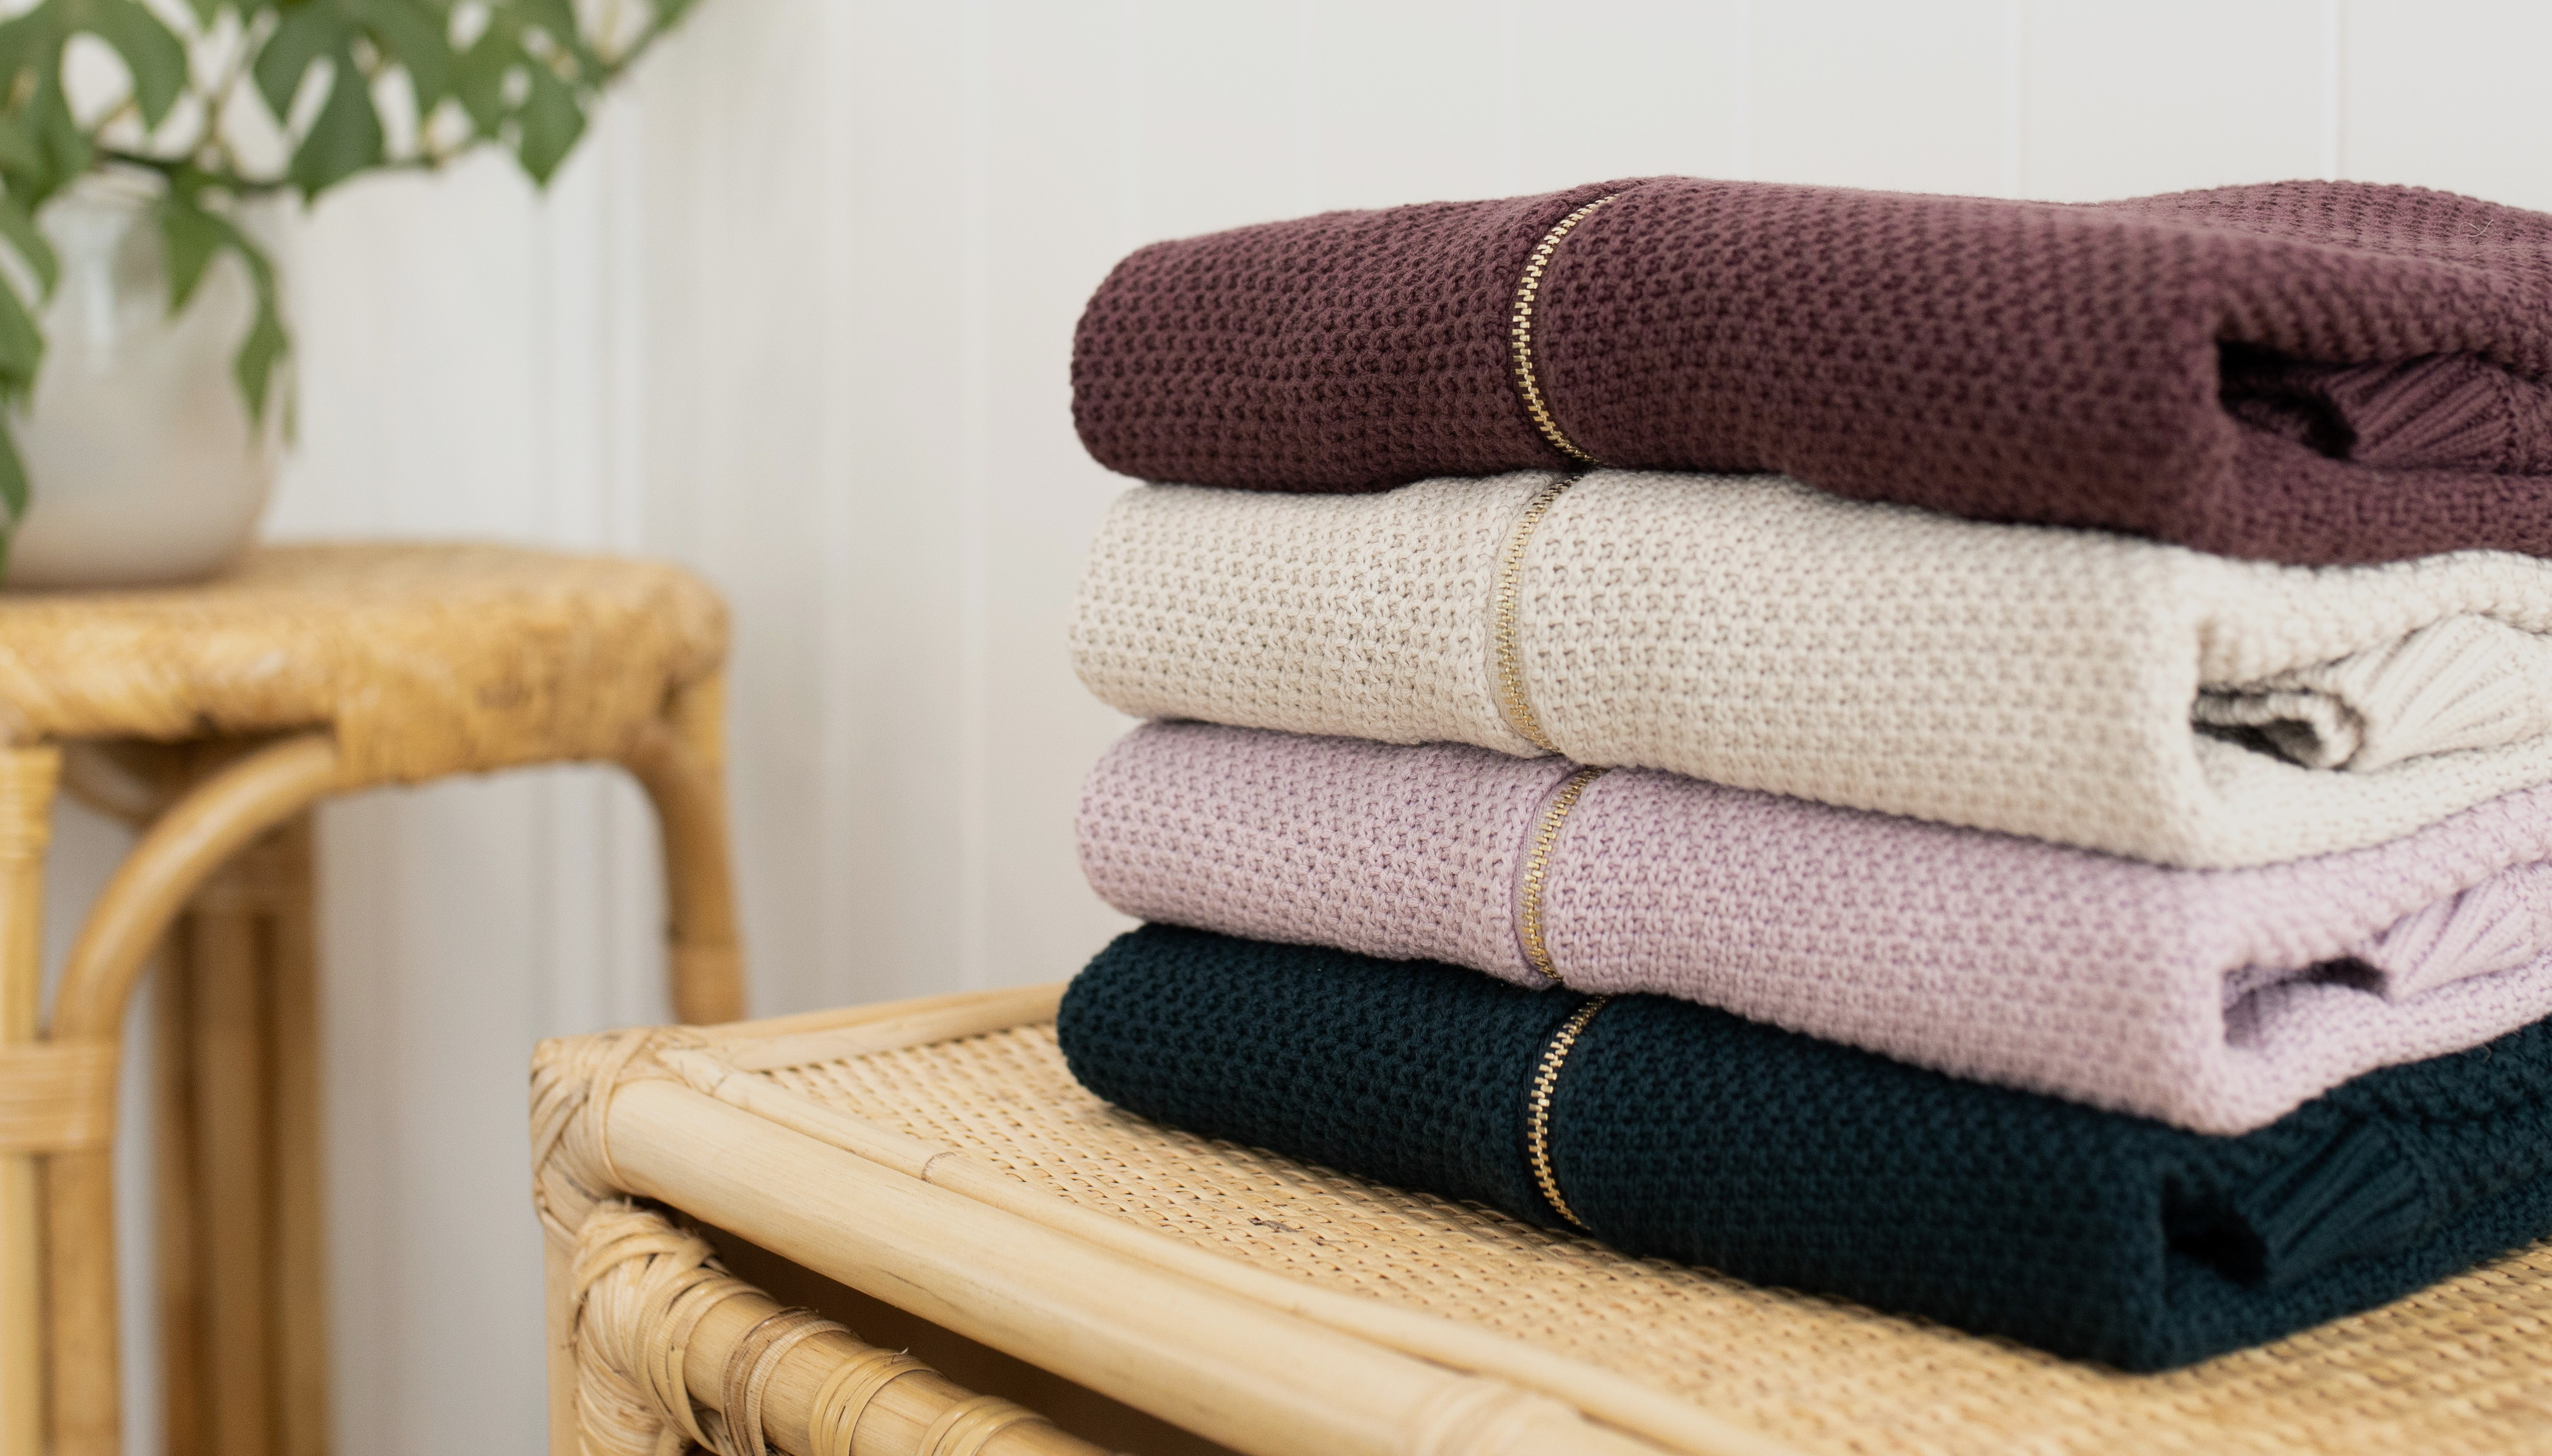 How To: Layer Your Knits for Breastfeeding